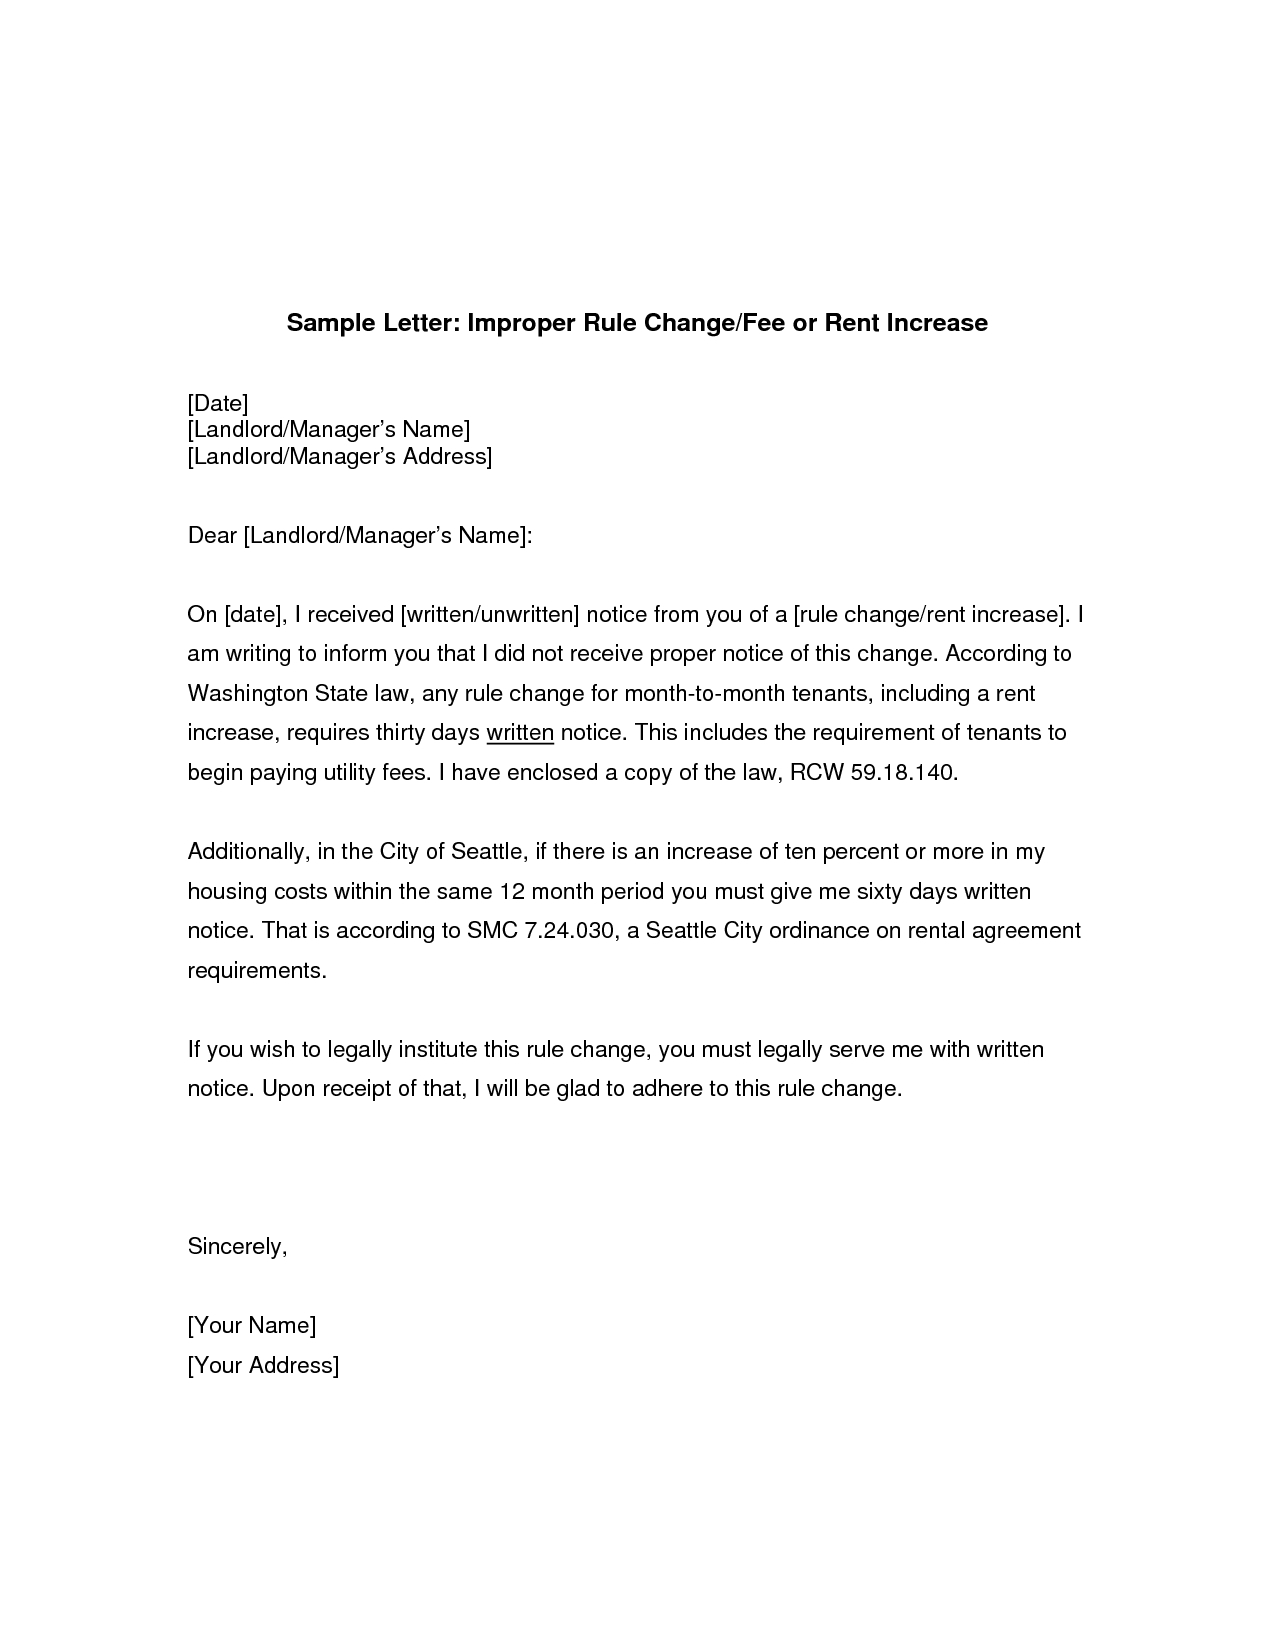 Change Of Ownership Letter to Tenants Template - Rent Increase Sample Letter Legal Documents